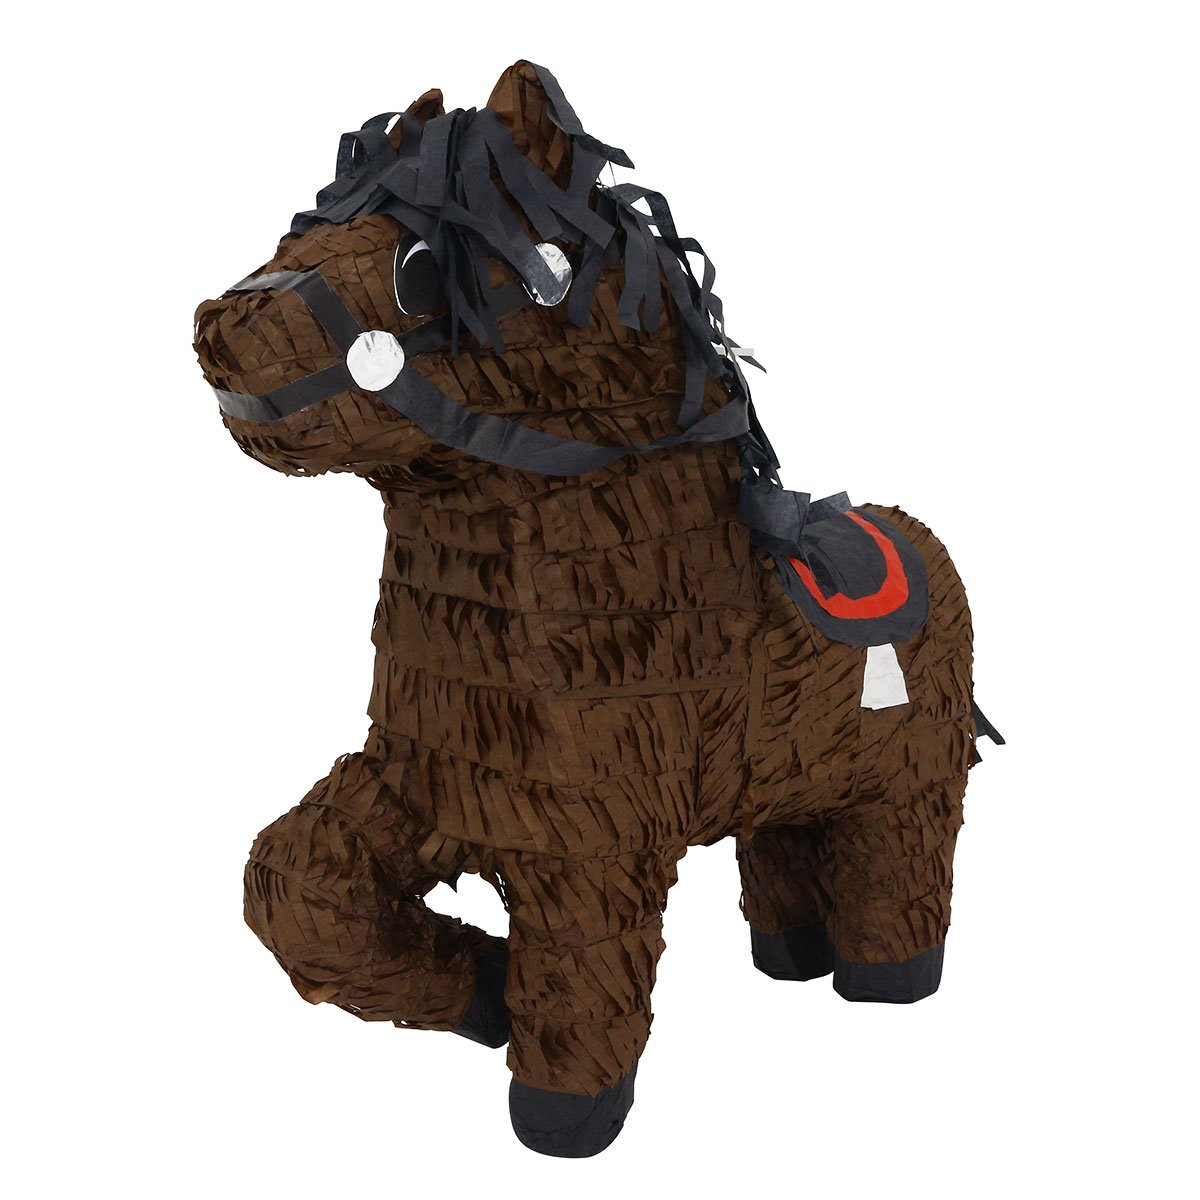 LYTIO – Realistic Brown Horse with Folded Leg Pinata (Piñata) - Design for Desert/West and/or Animal Theme Parties, Décor, Photo Prop, Center Piece.